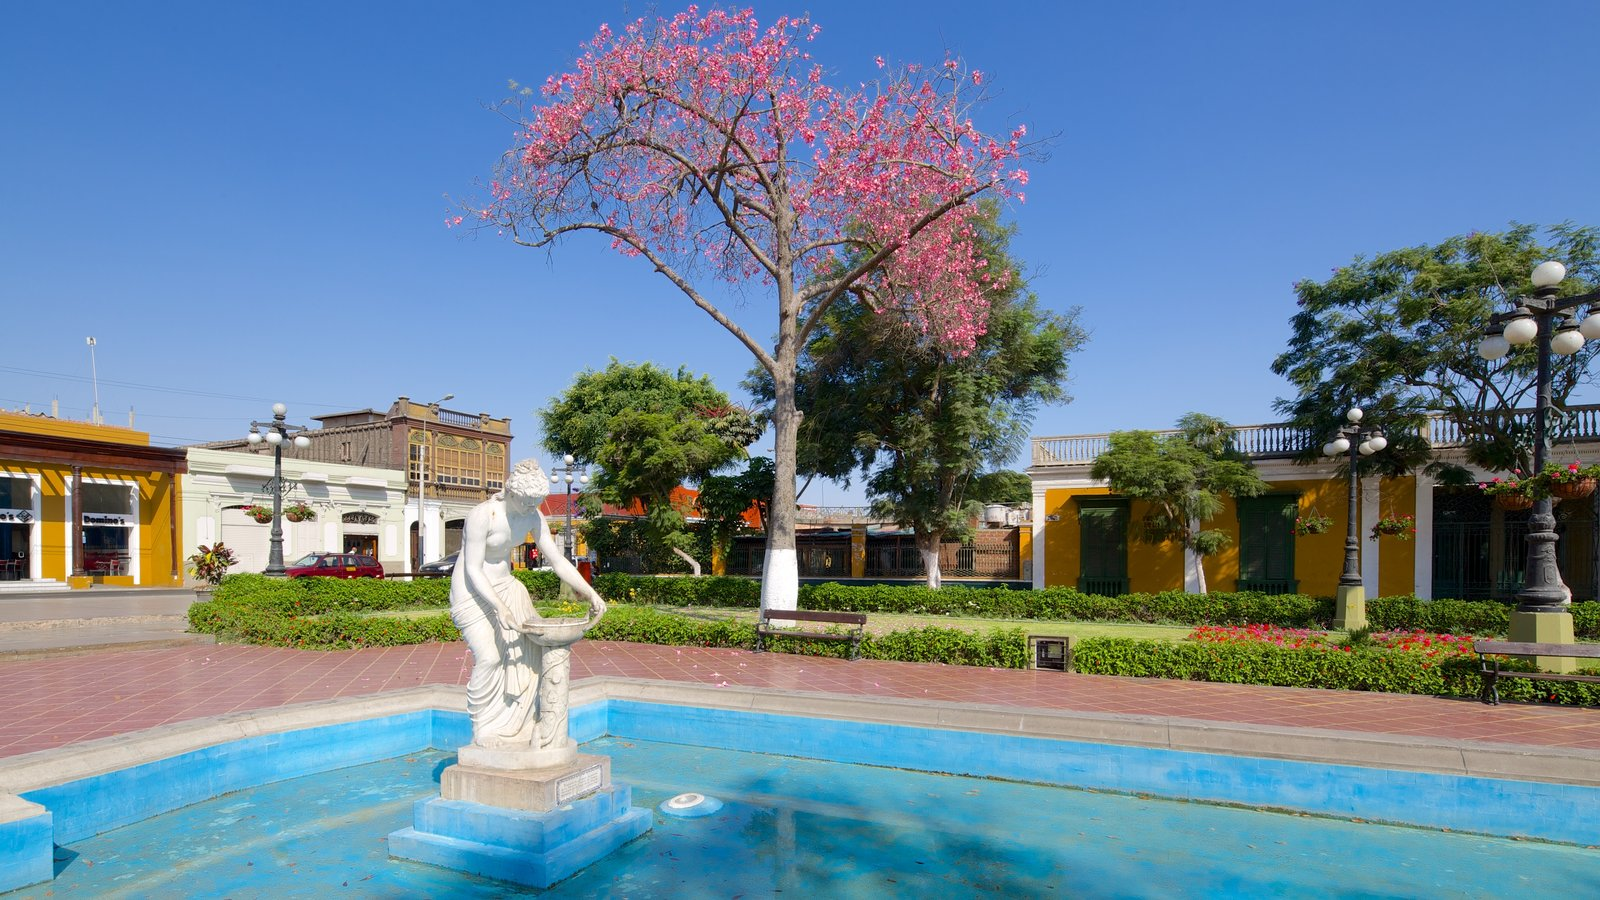 Barranco which includes art, a city and a fountain